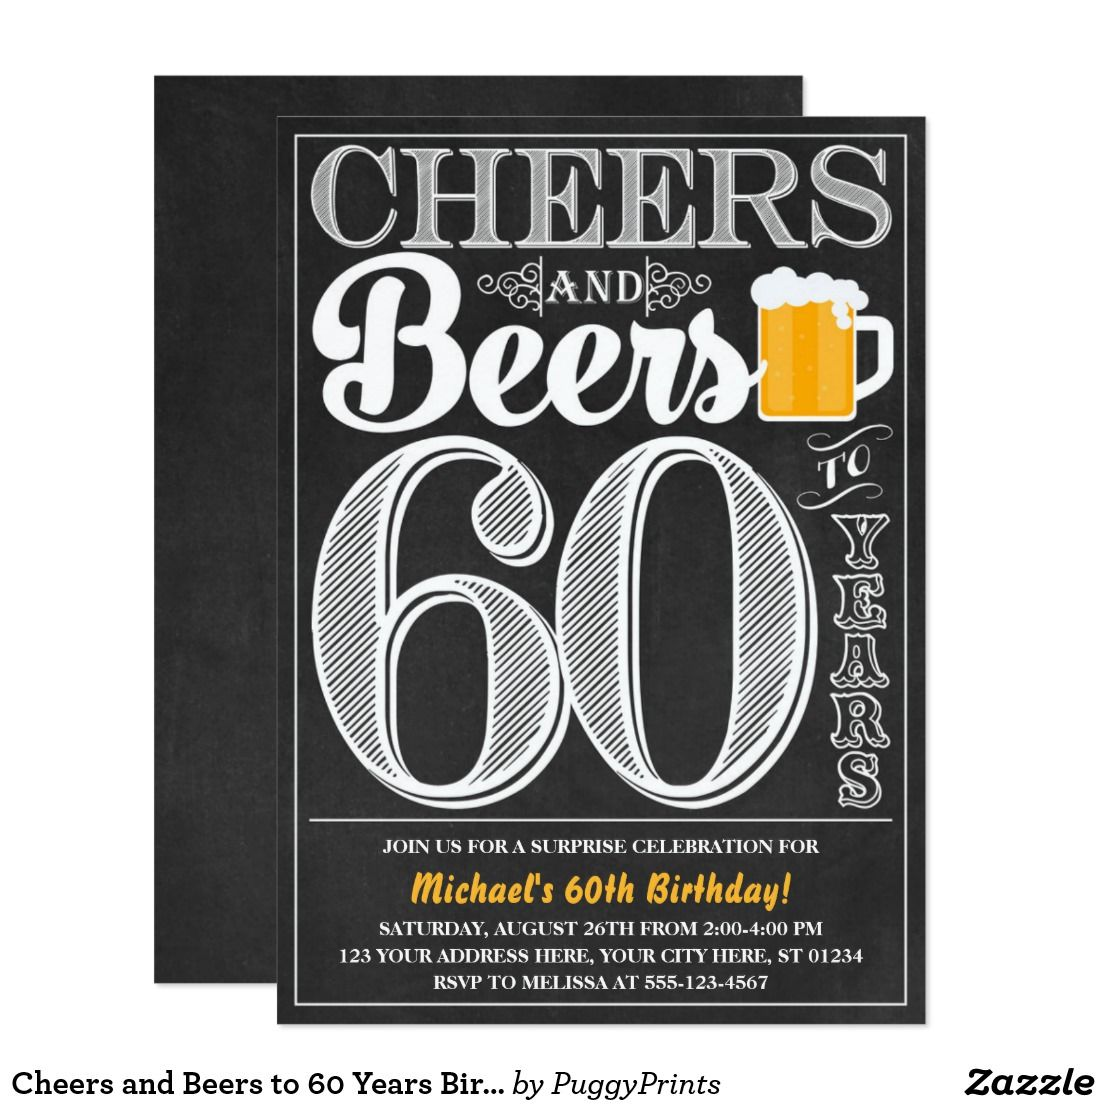 Cheers and Beers To 100th Birthday Wall Art Poster